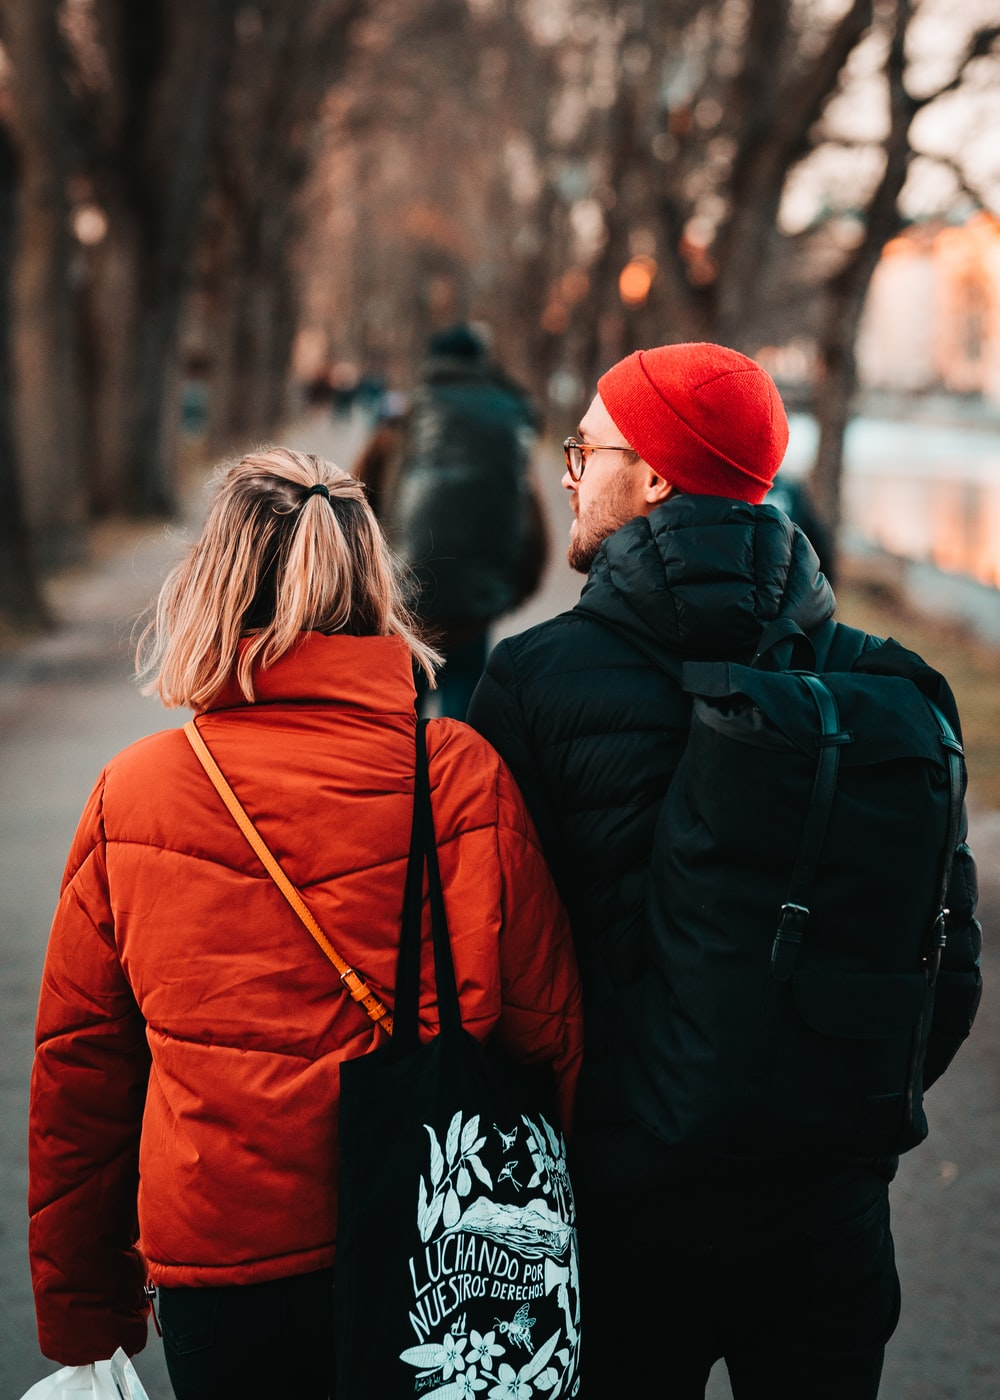 woman in red knit cap and red jacket standing in front of man in black jacket